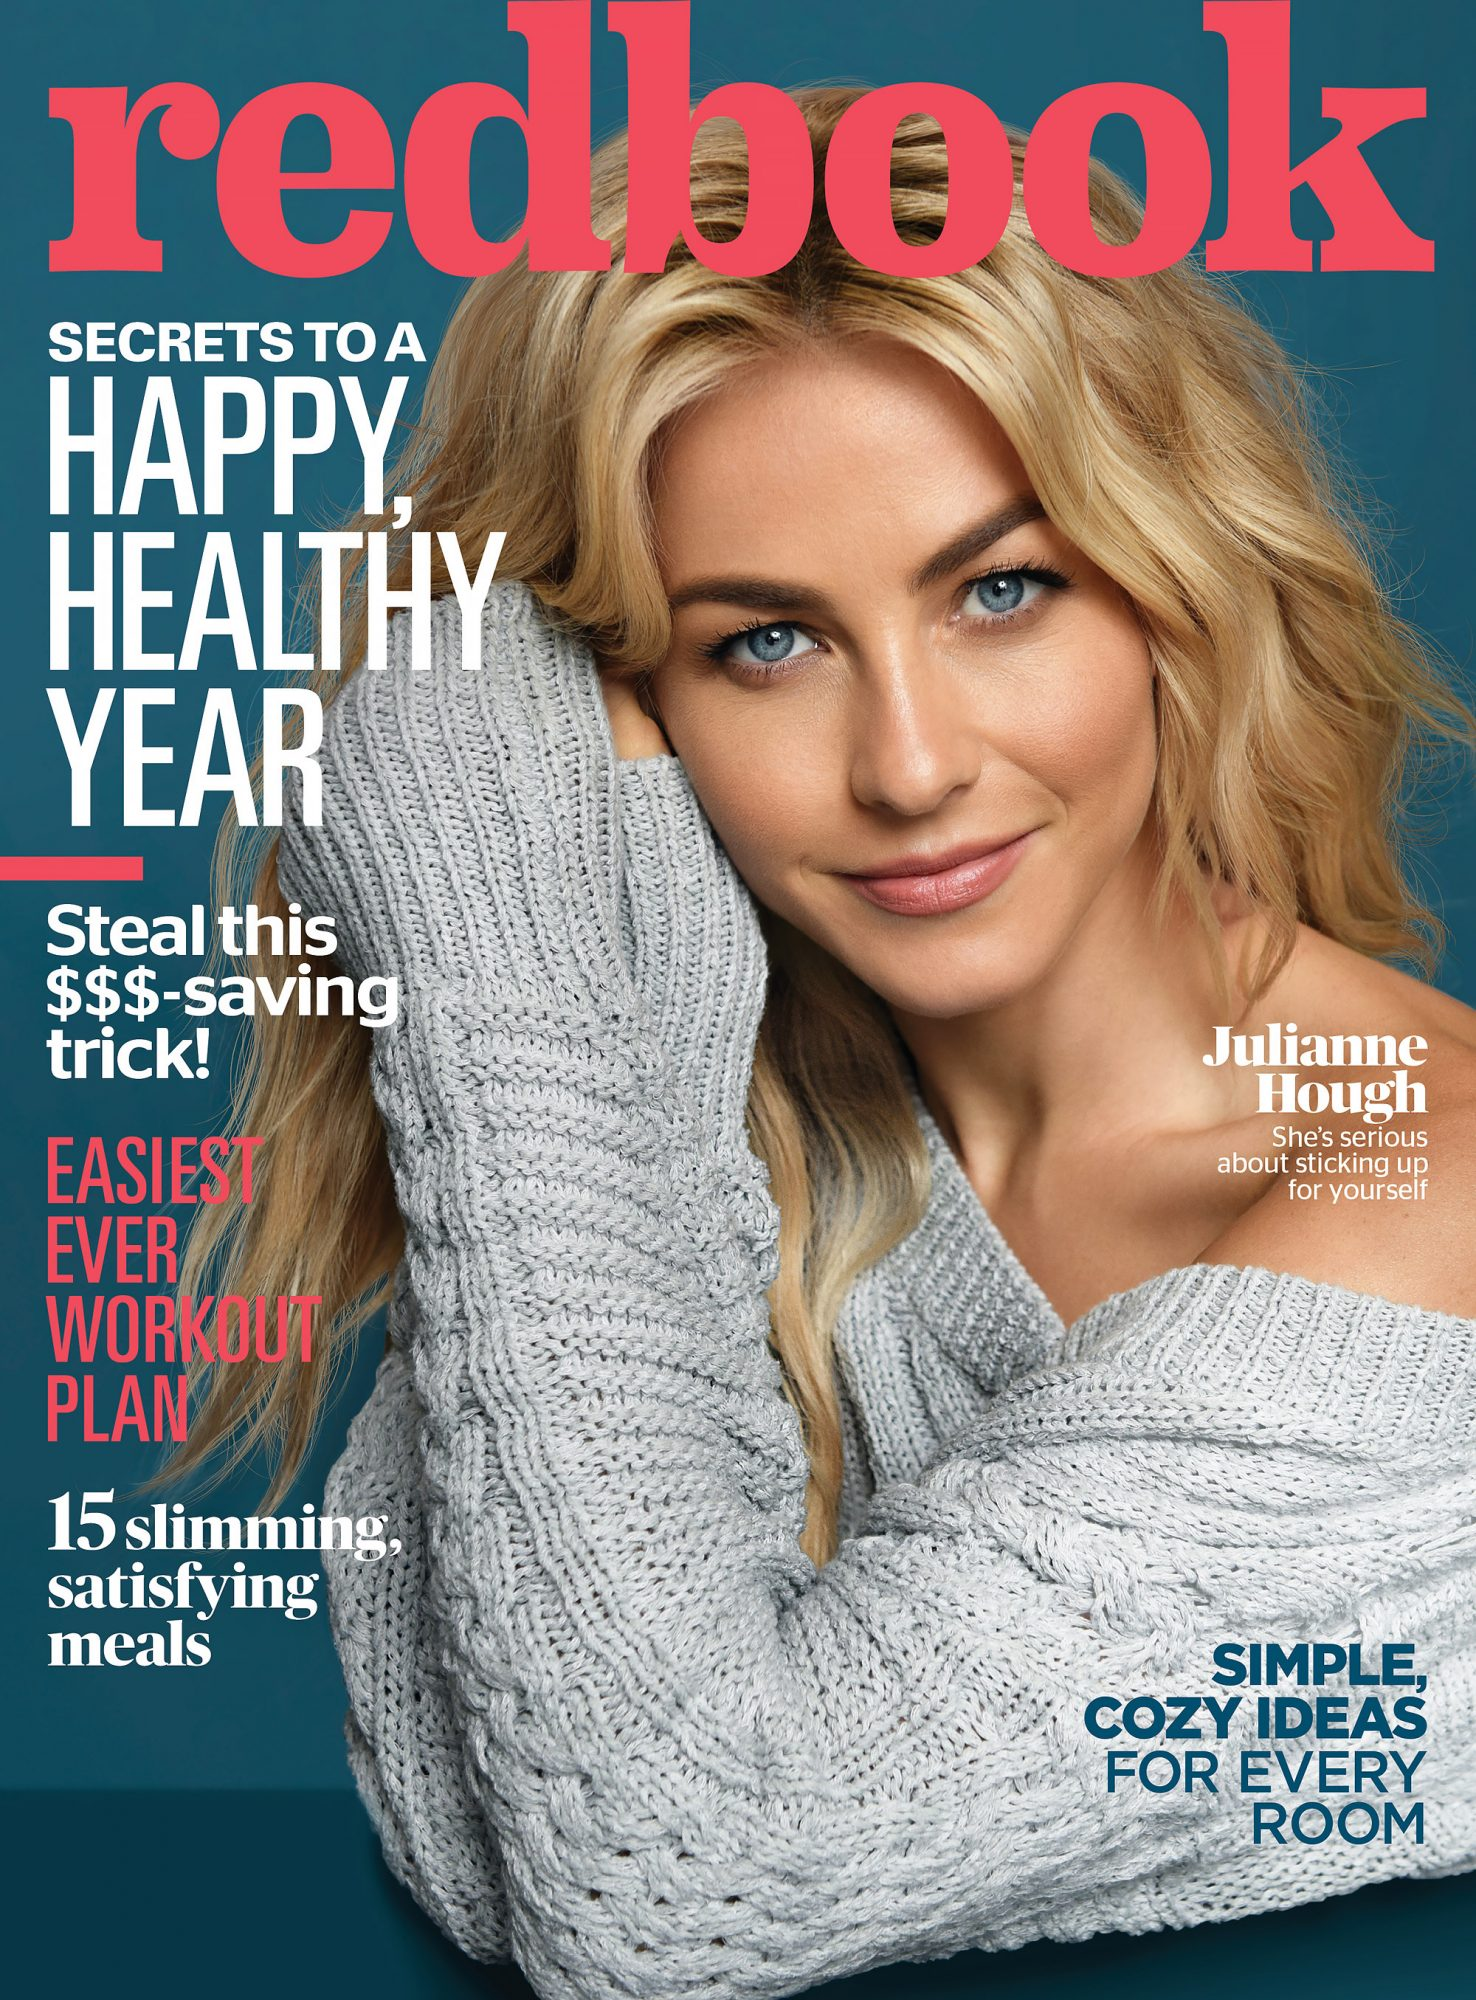 Julianne Hough, RedbookCredit: Hudson Taylor